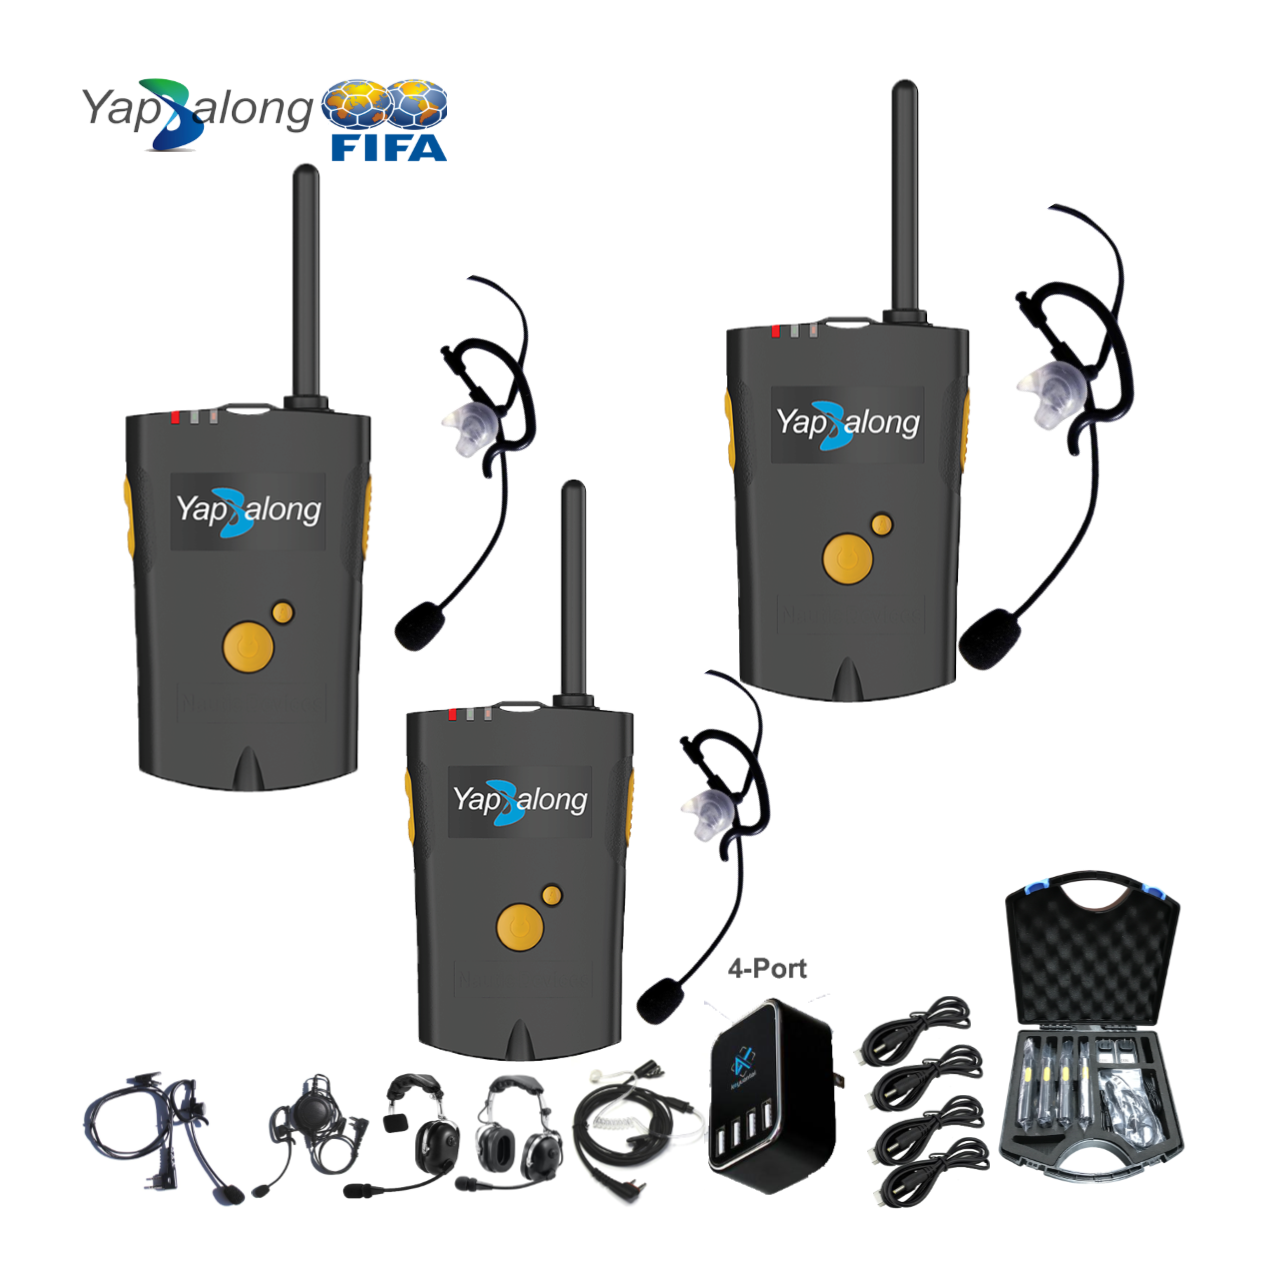 Yapalong 4000 (3-User) Complete Set Communications & IFB Intercom Systems